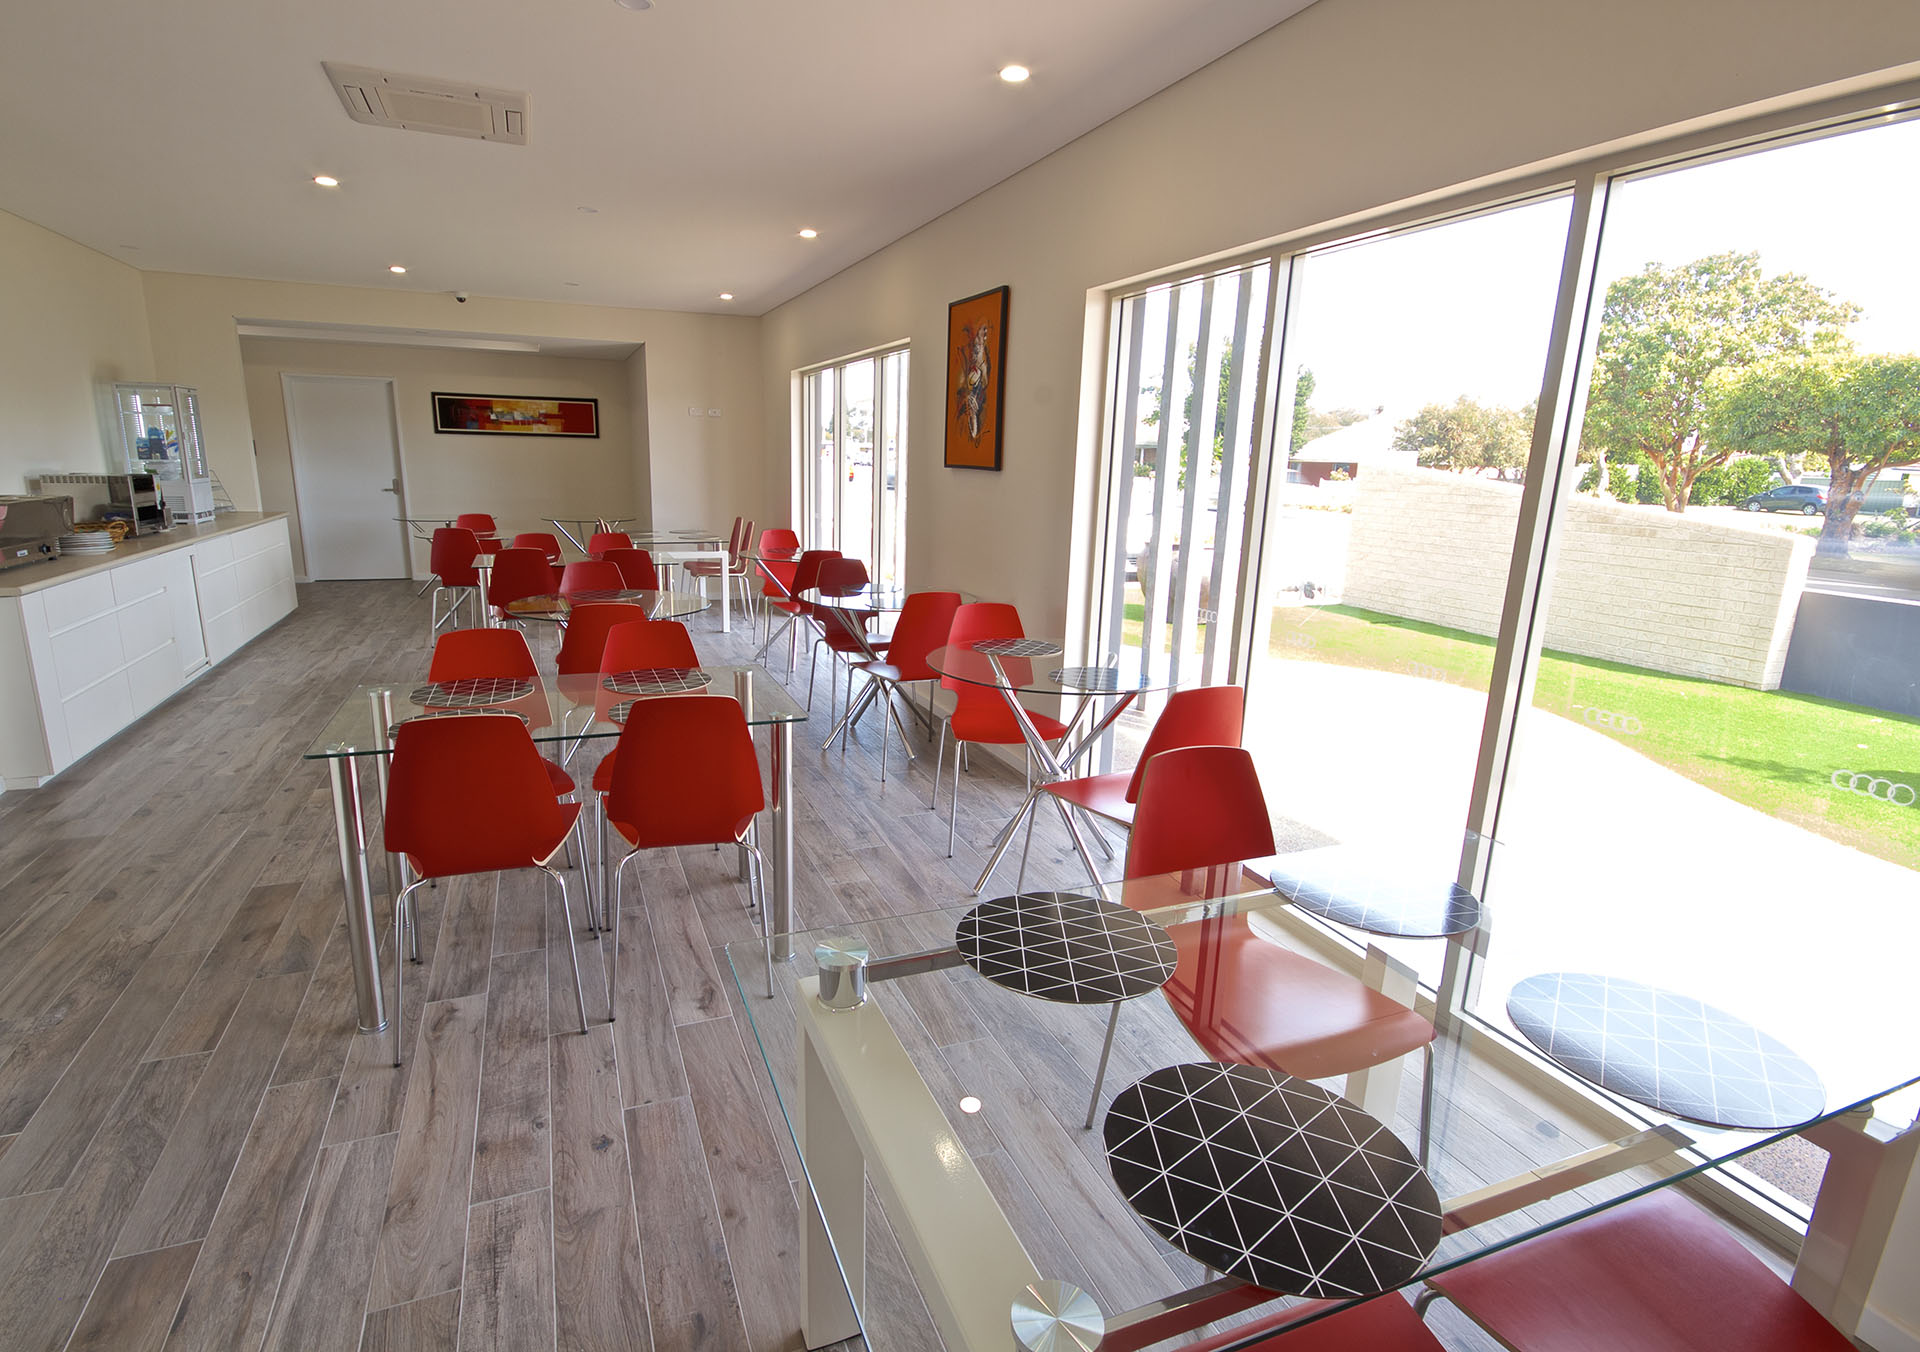 Two Bedroom Apartments With Courtyard – Bunbury Motel